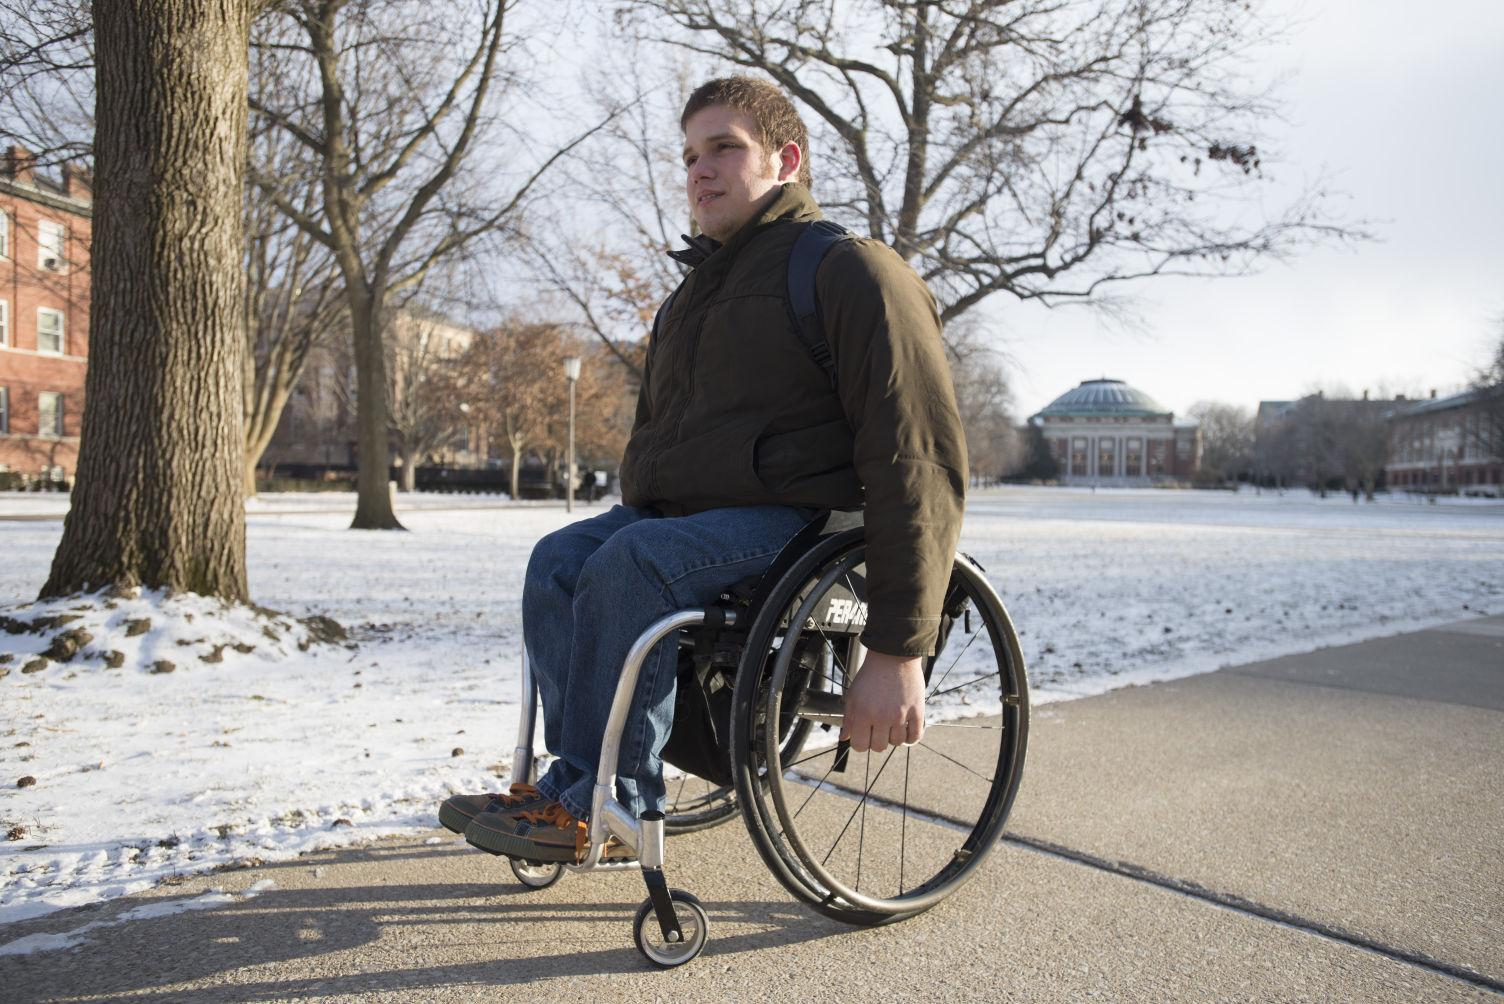 Tim Nagel, junior in AHS, is one of many students in wheelchairs who struggle with bad weather.